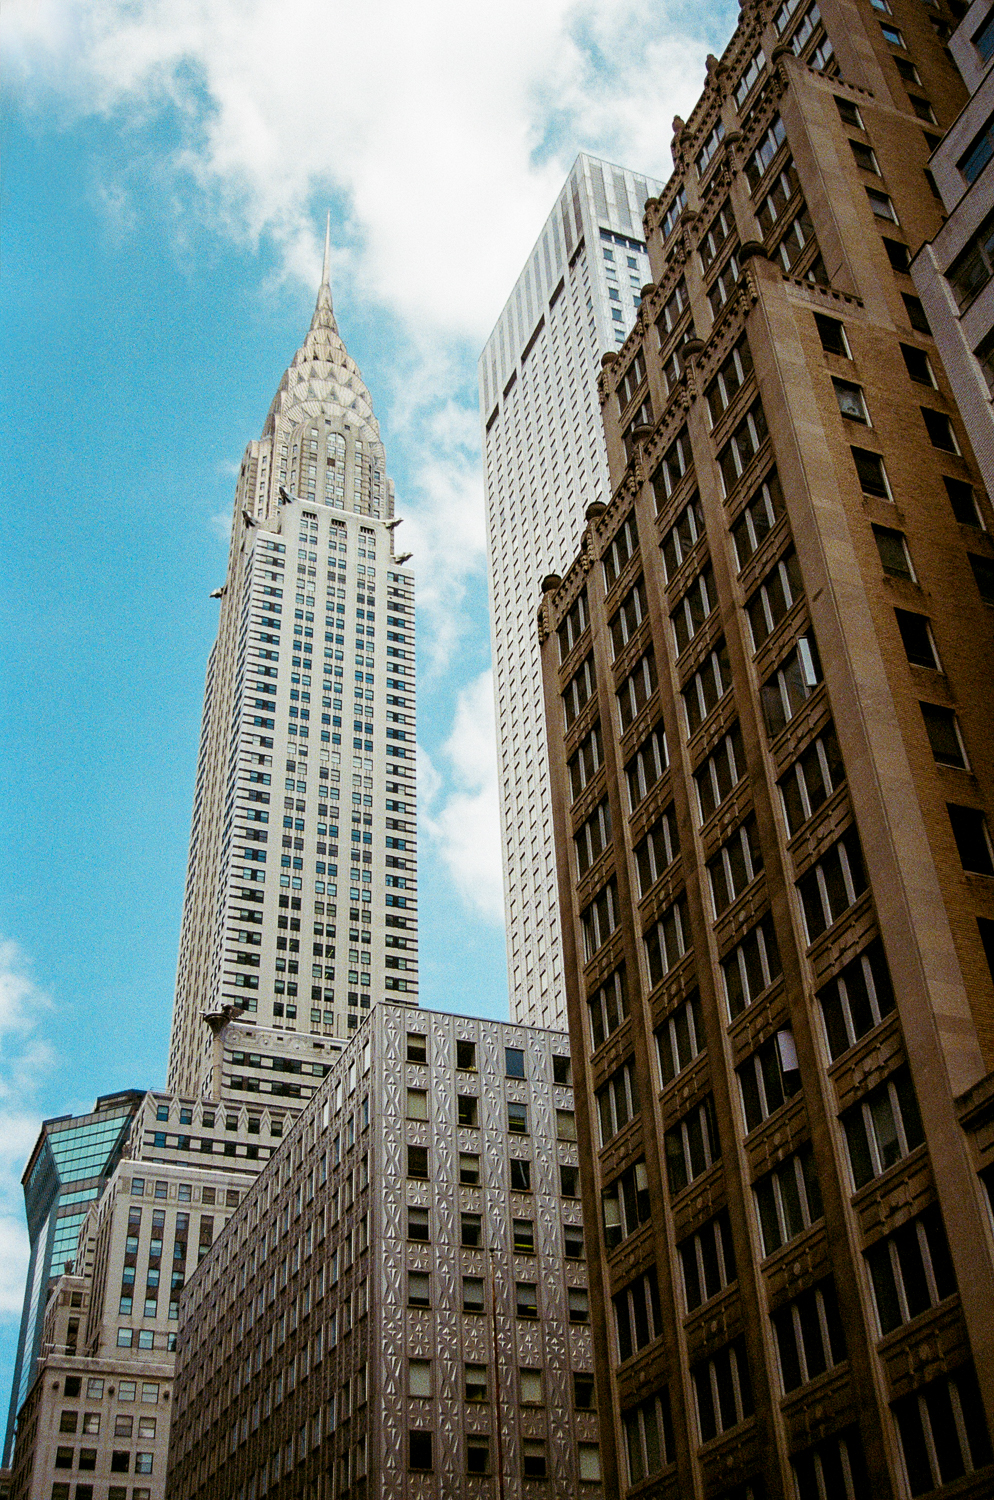 The Chrysler building--This is one of my favorite NYC buildings. Can you tell it was built in the 20s?